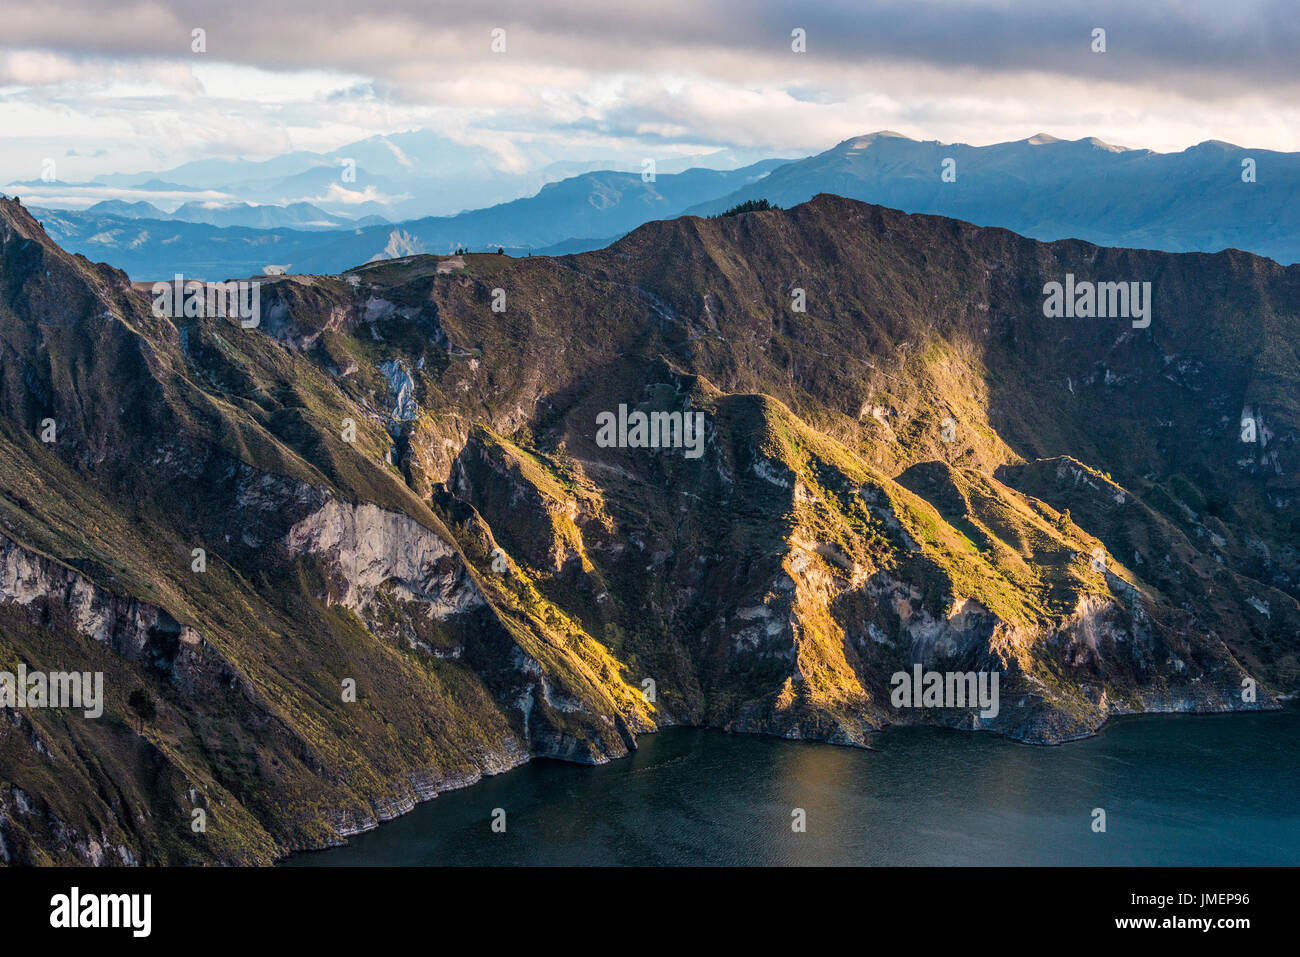 Early morning on the Quilotoa volcano caldera and lake, Andes. Ilinizas Nature Reserve, Ecuador - Stock Image